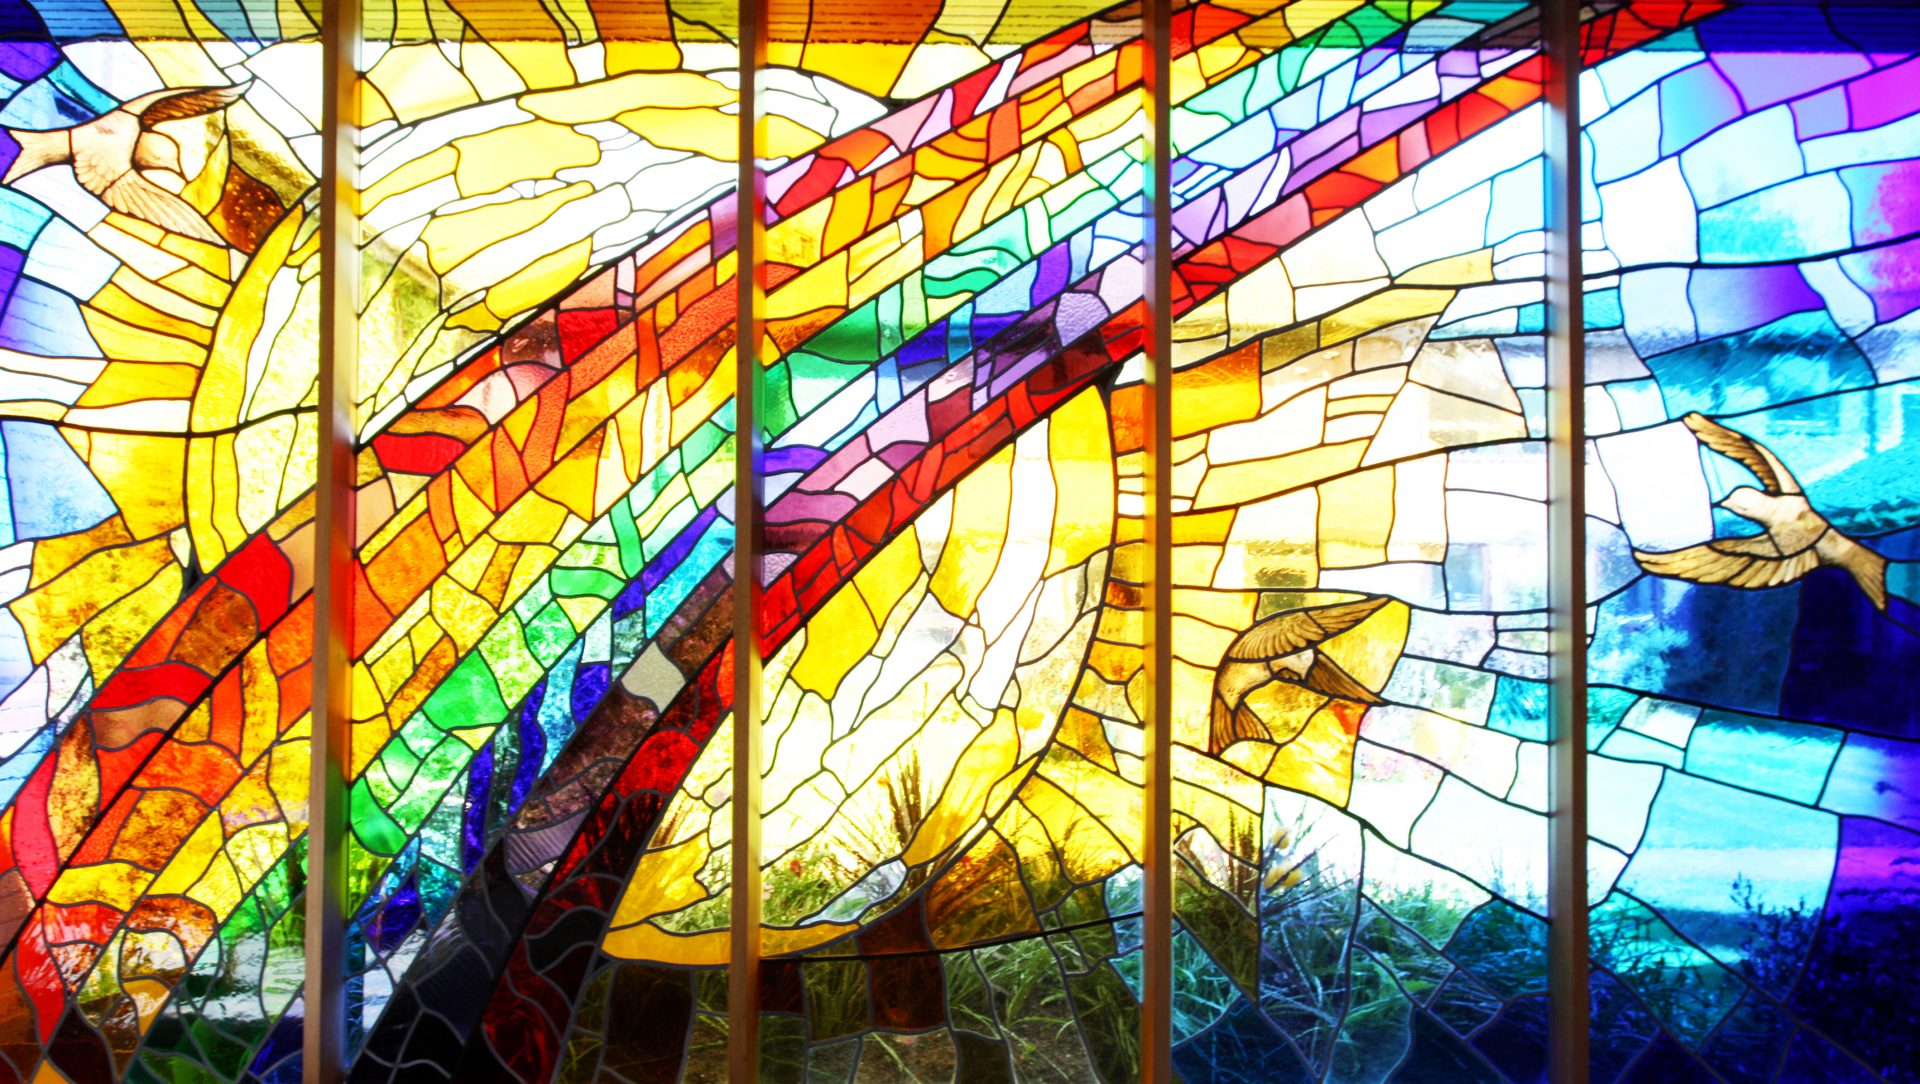 Chapel stained glass window with rainbow